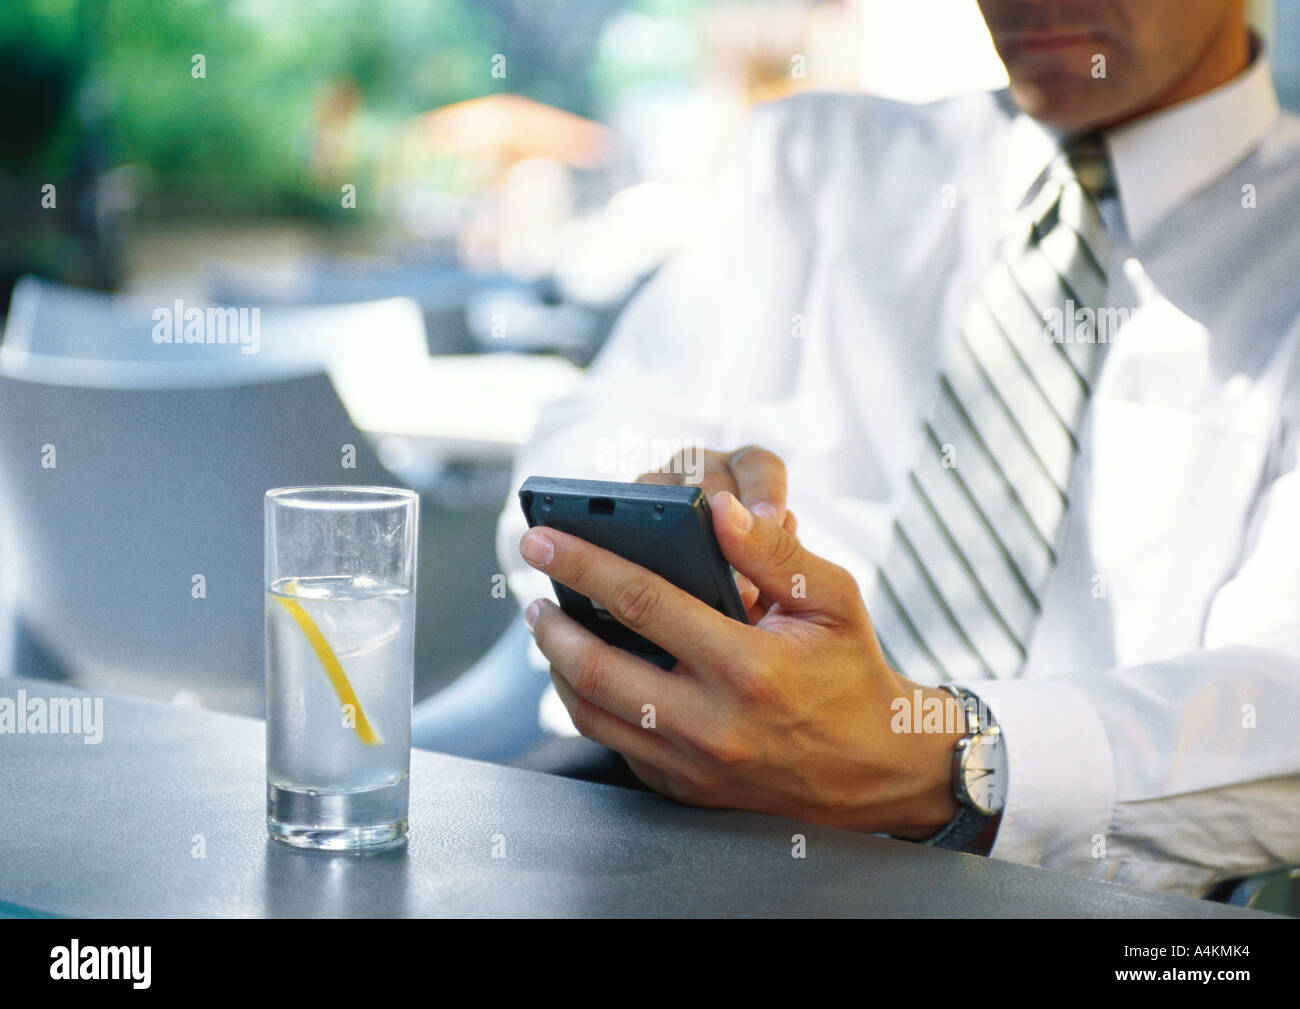 Businesman using electronic organizer in restaurant - Stock Image